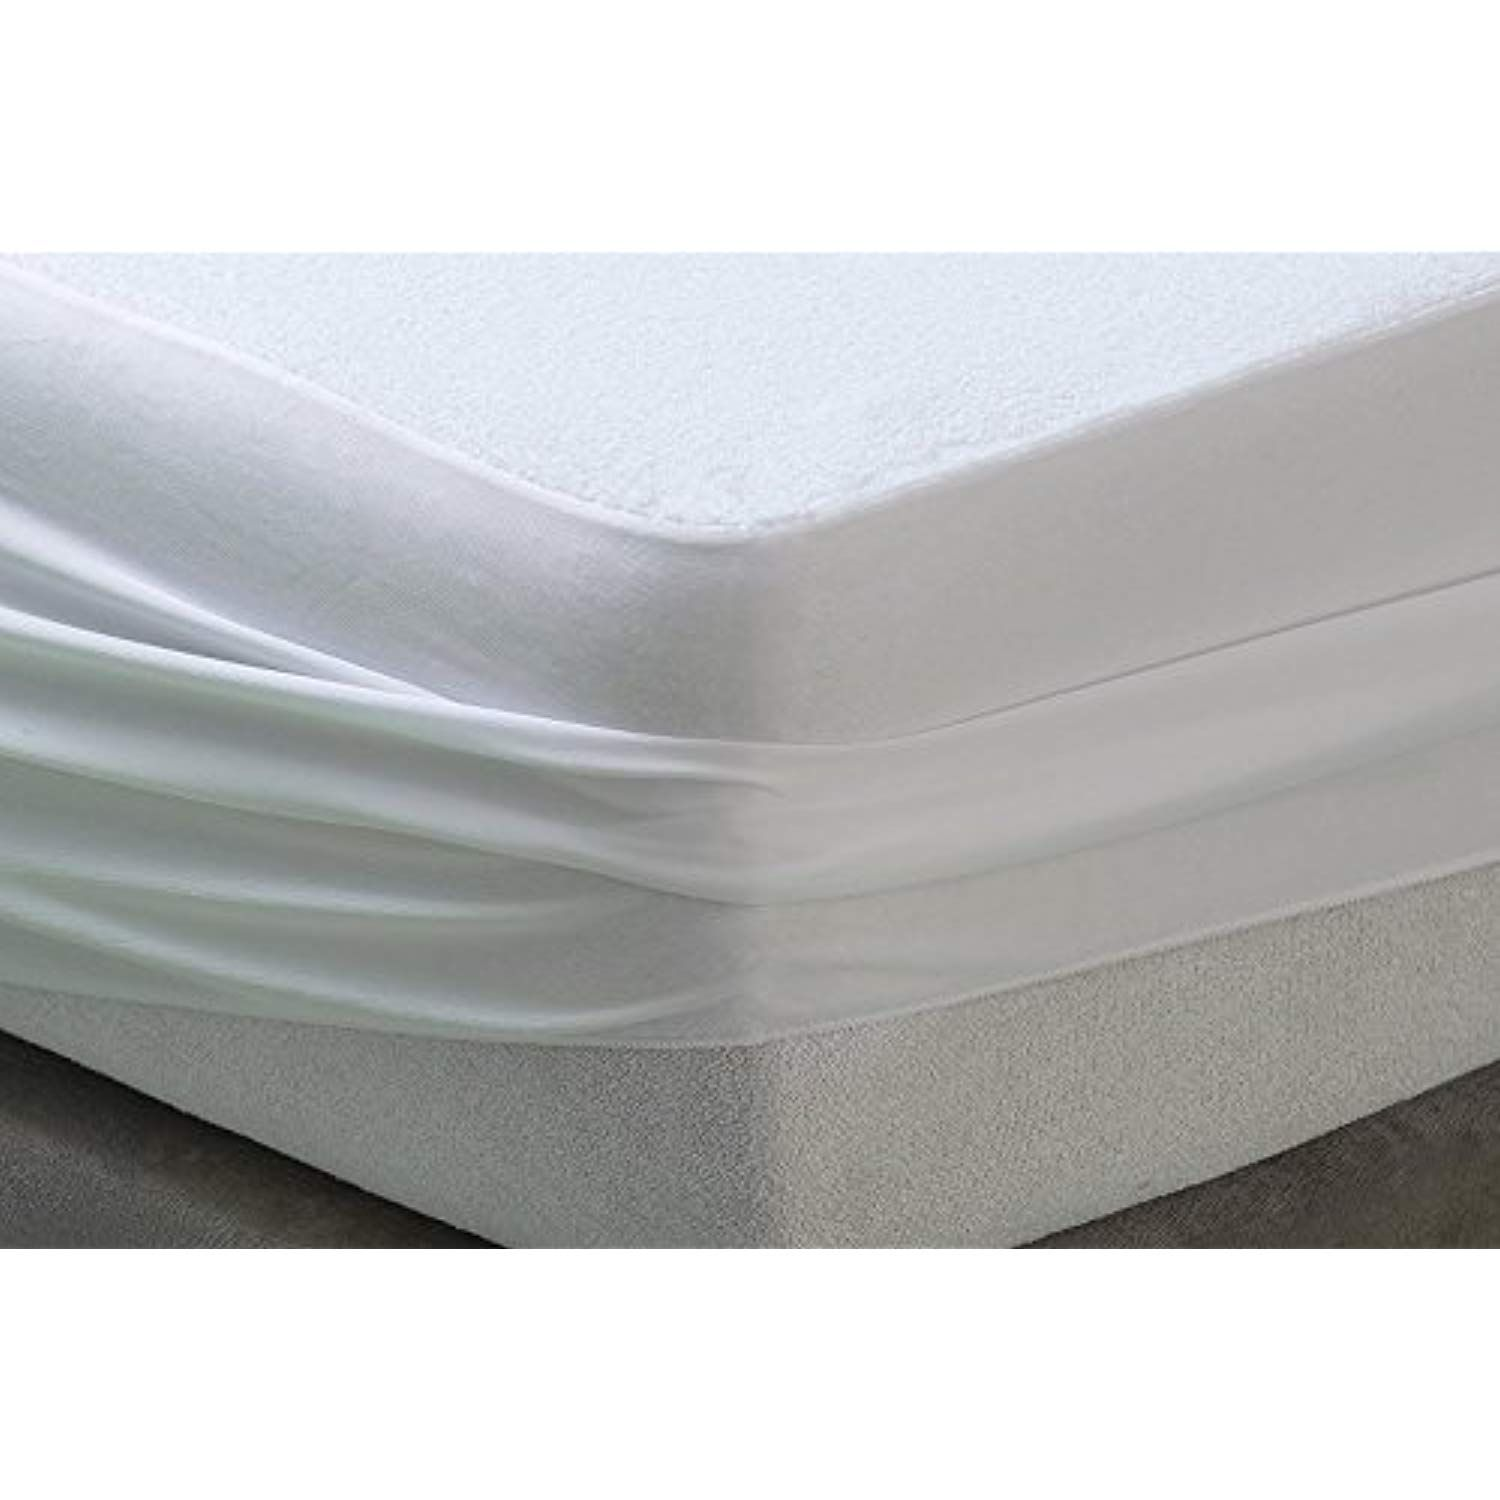 Mattress Protector WATERPROOF terry cotton Soft Hypoallergenic Fitted Pad Cover